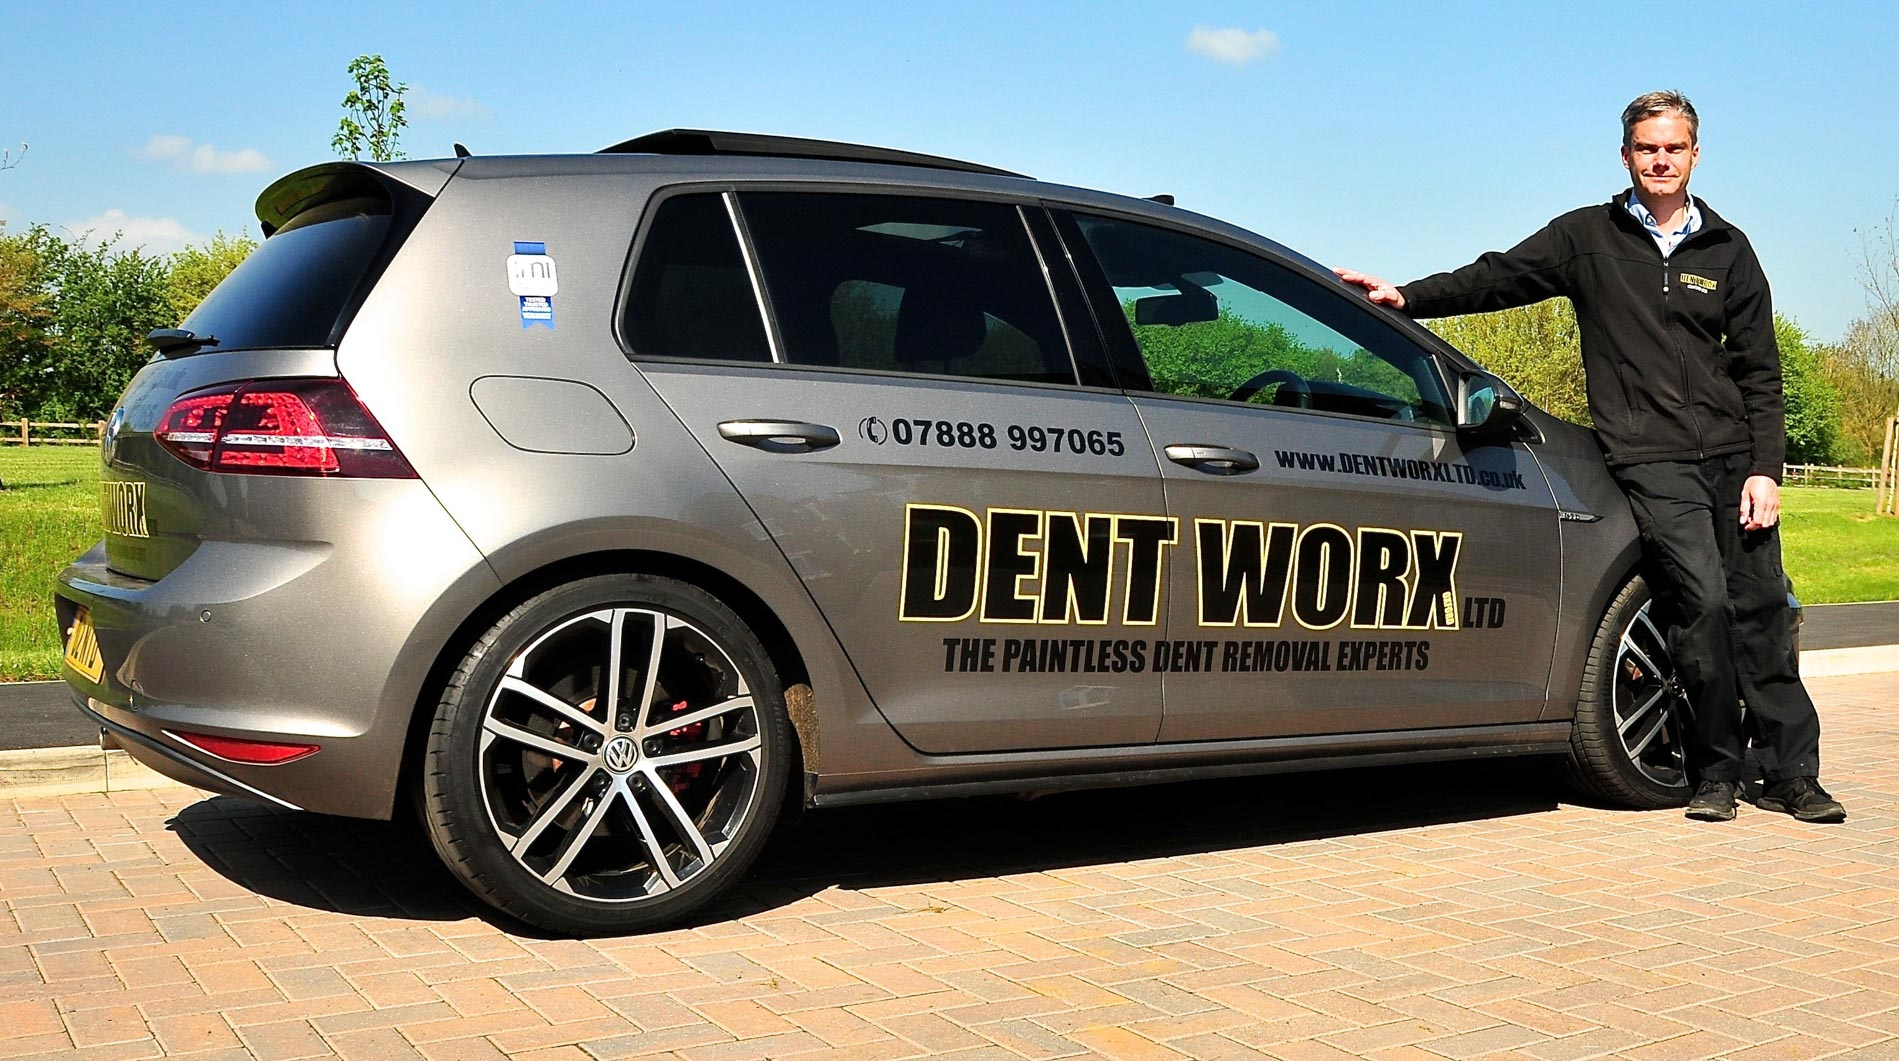 Dentworx Oxford Ltd